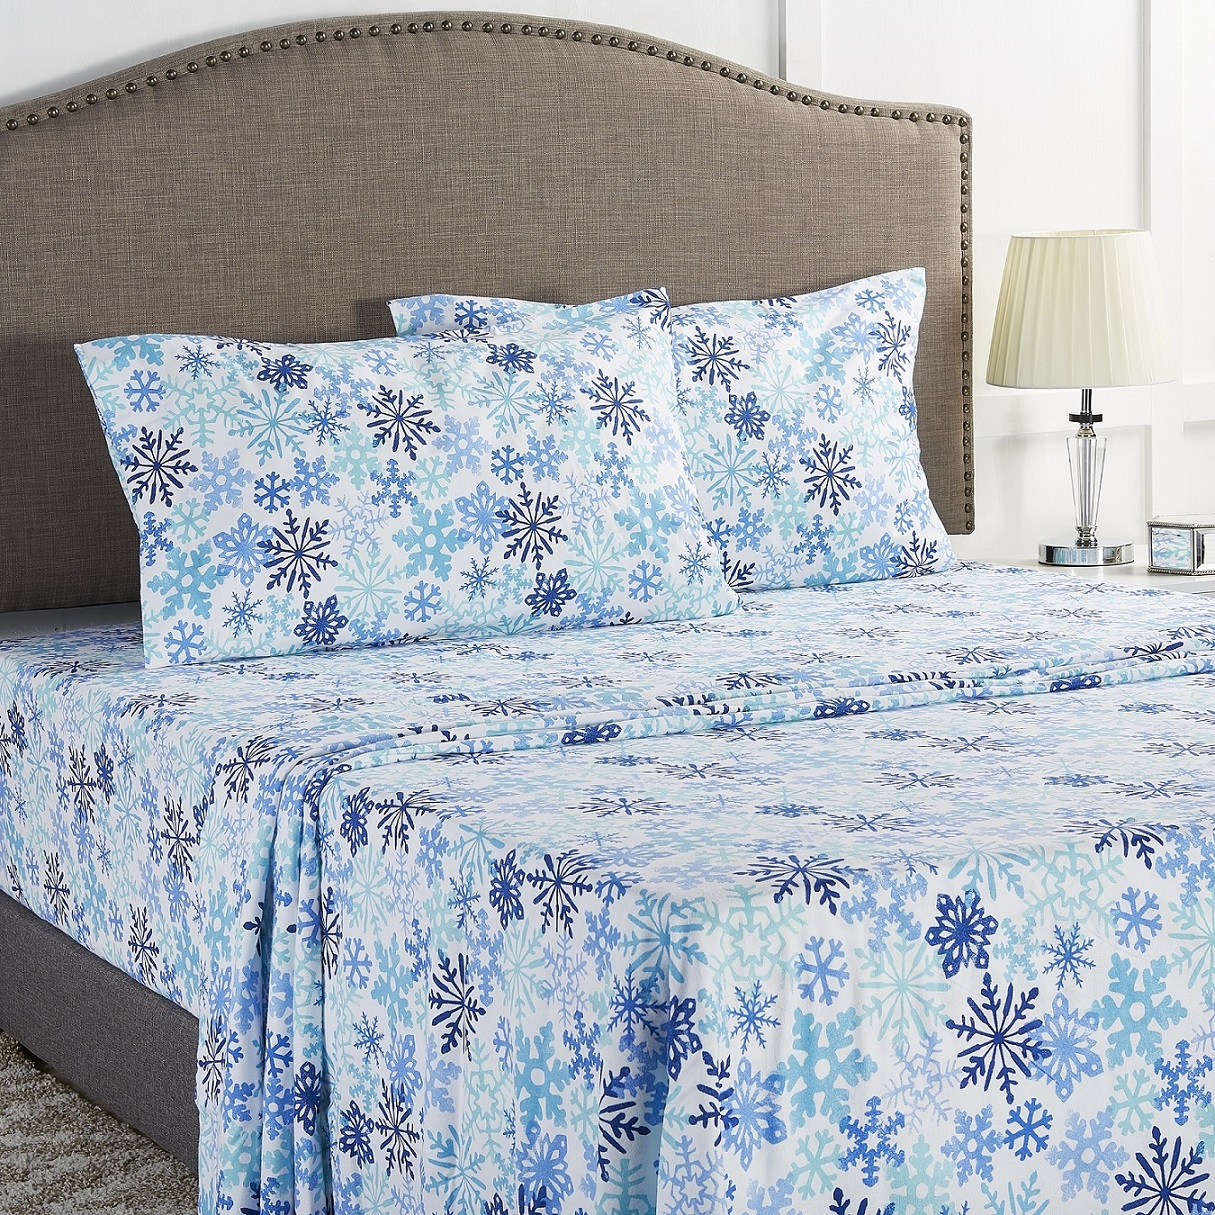 Mainstays Flannel Sheet Set, King